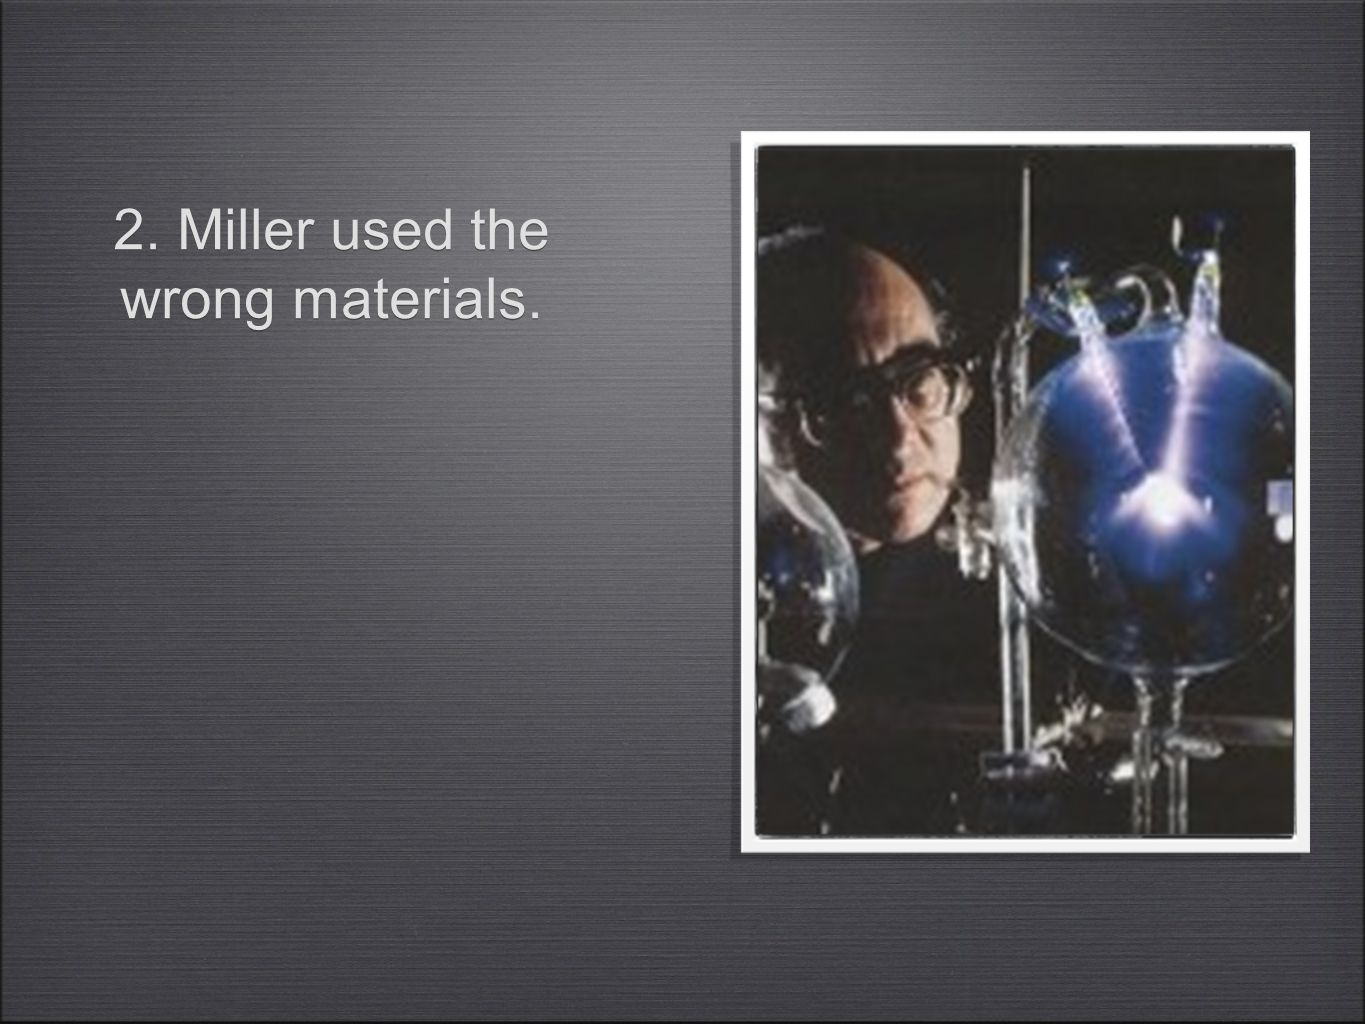 2. Miller used the wrong materials.